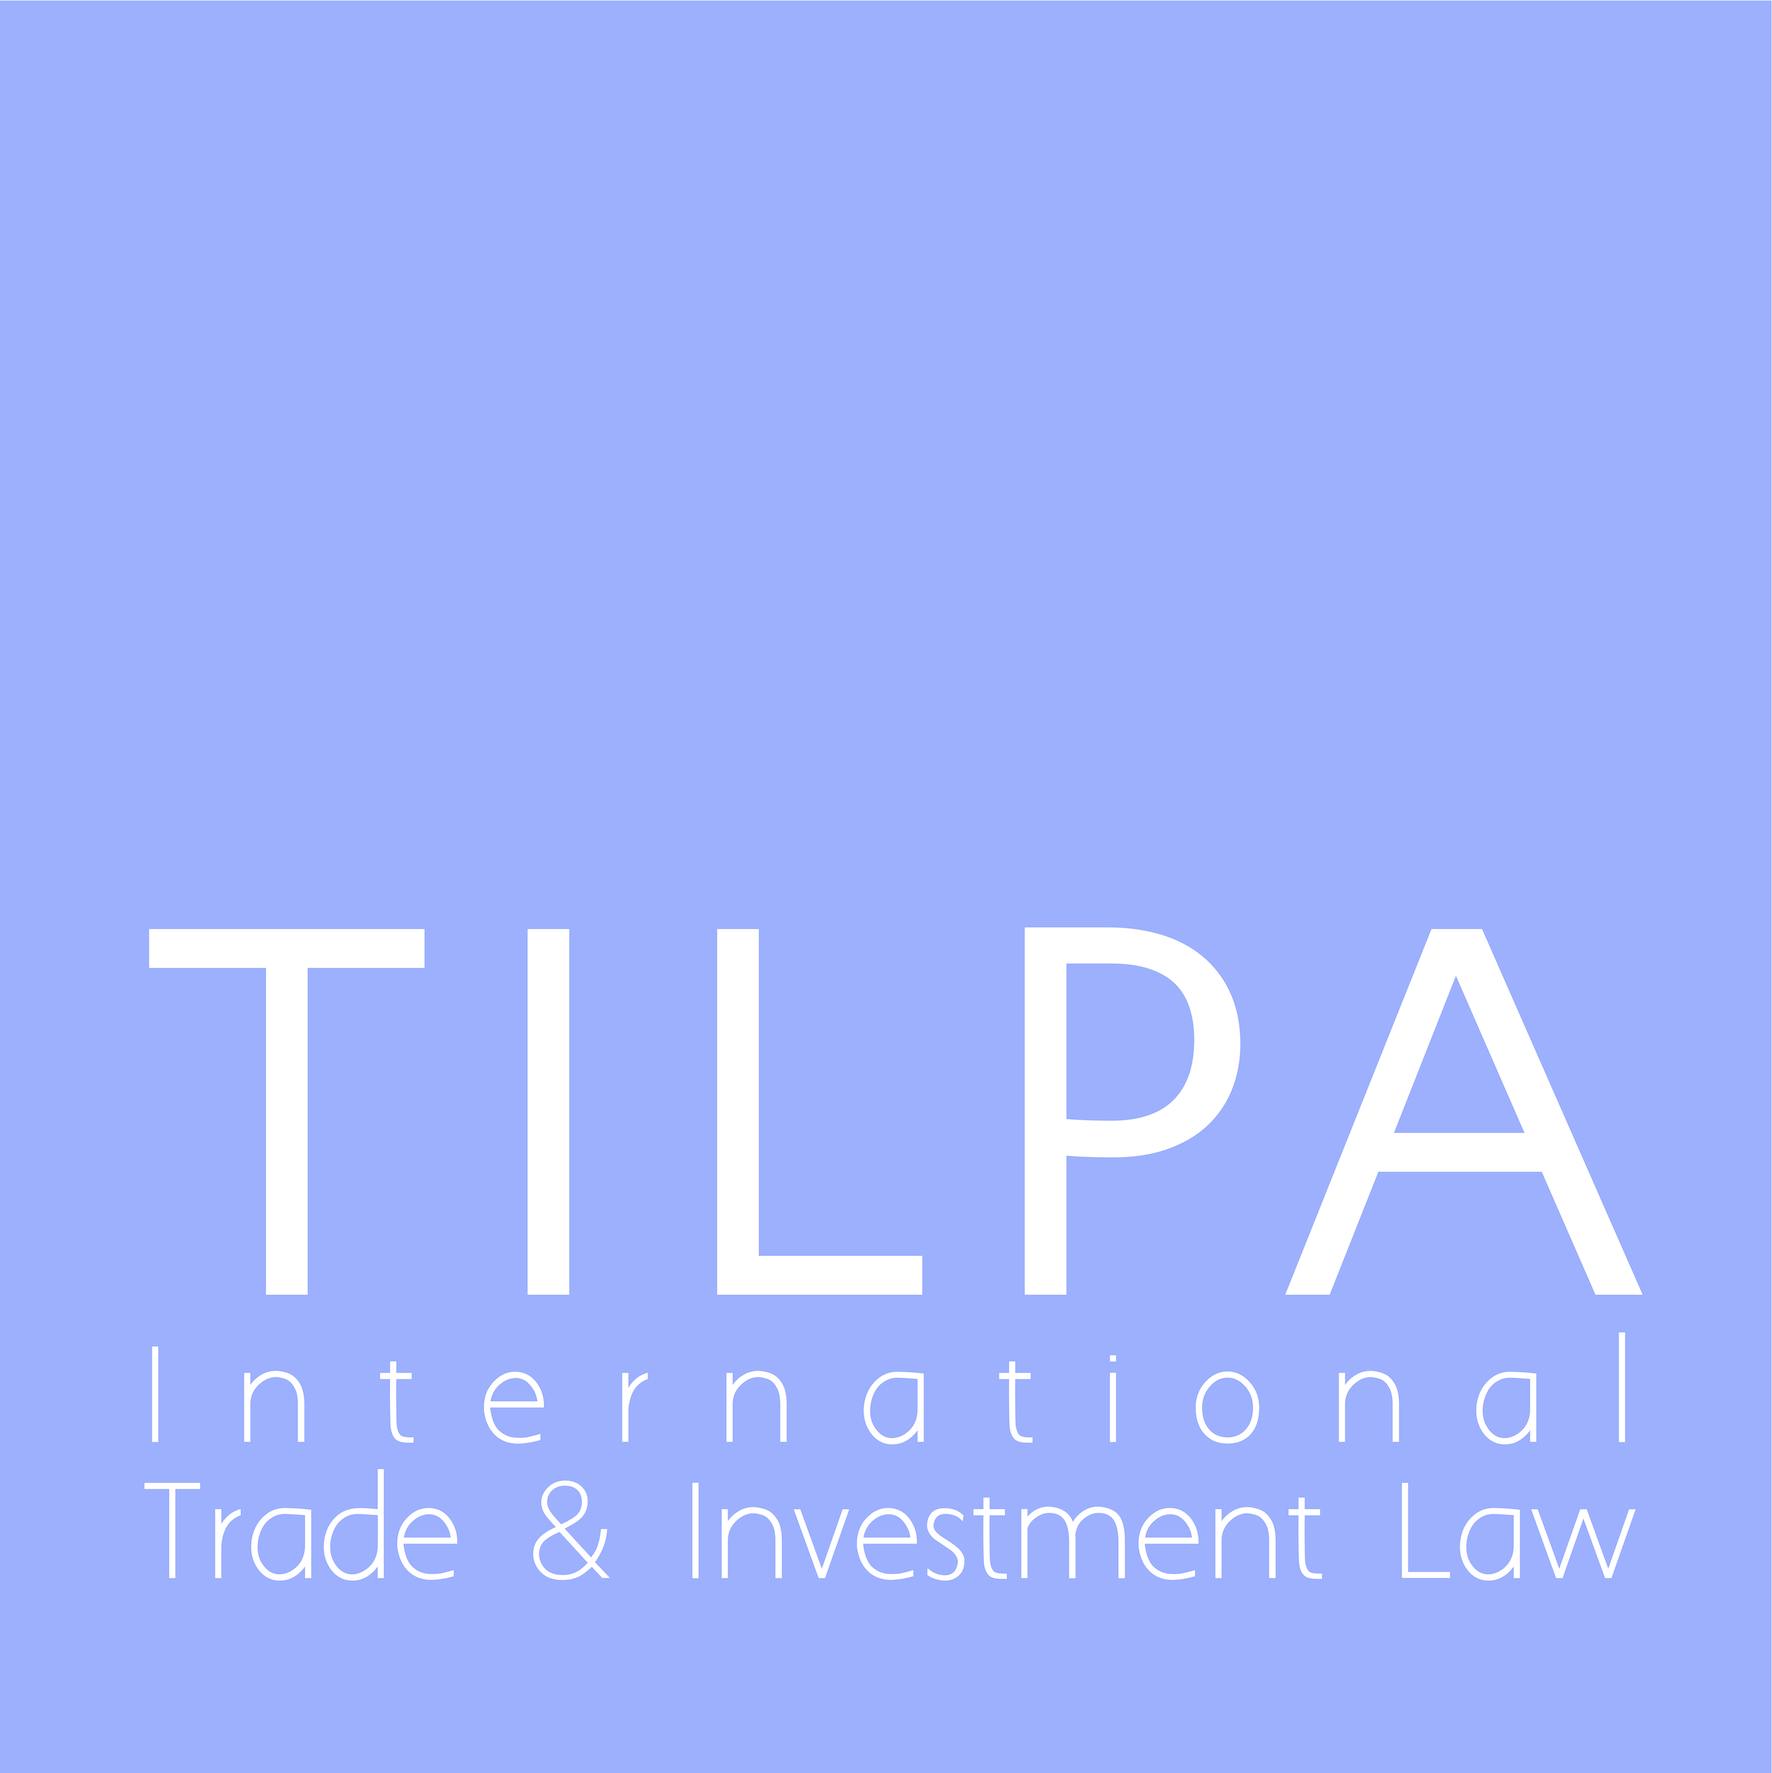 TILPA - International Trade & Investment Law